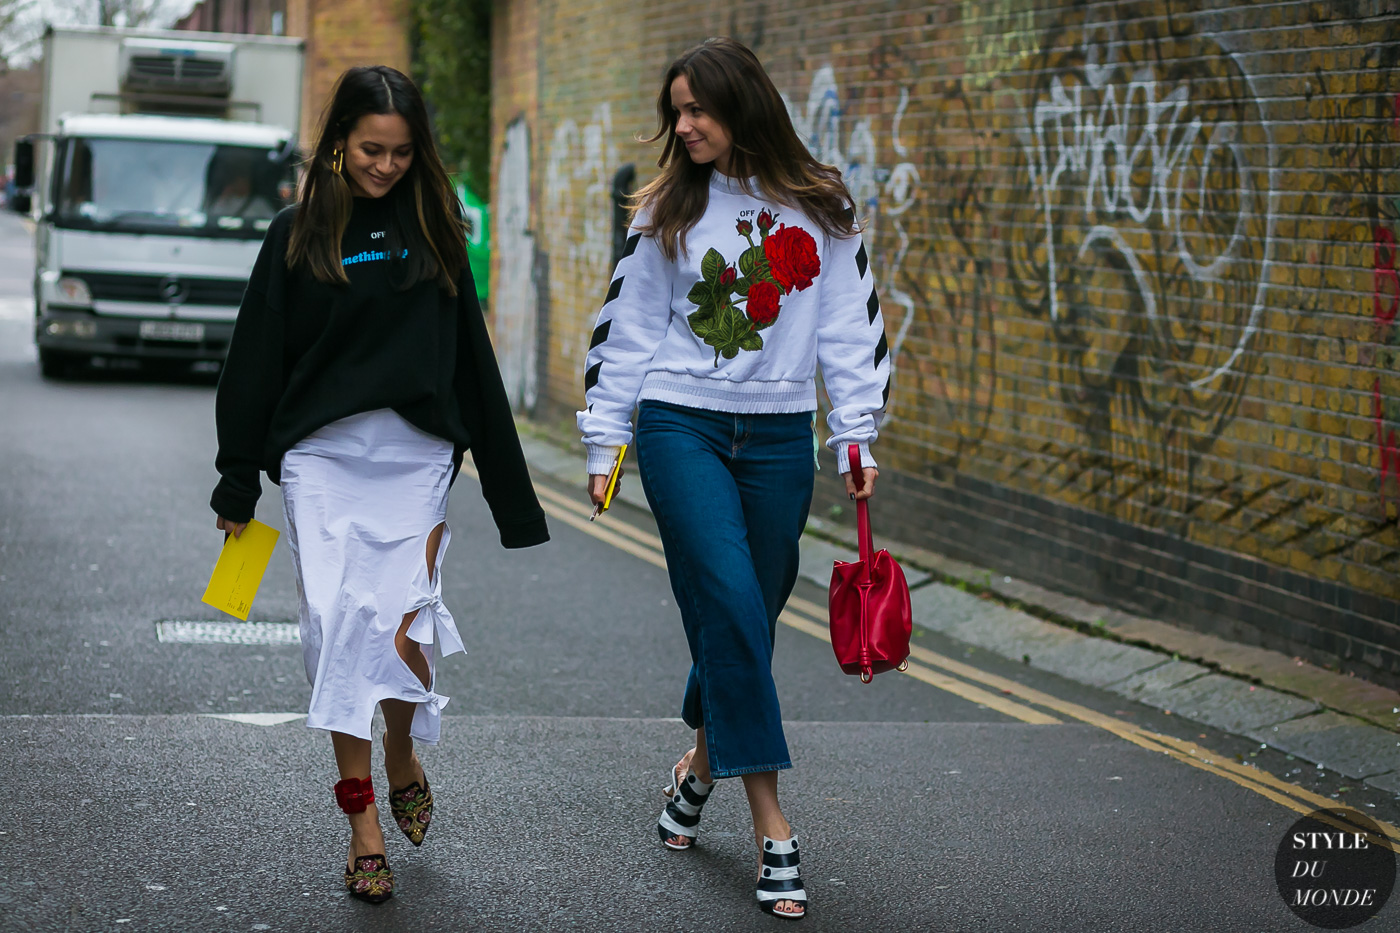 Florrie Thomas and Anna Rosa Vitiello by STYLEDUMONDE Street Style Fashion Photography